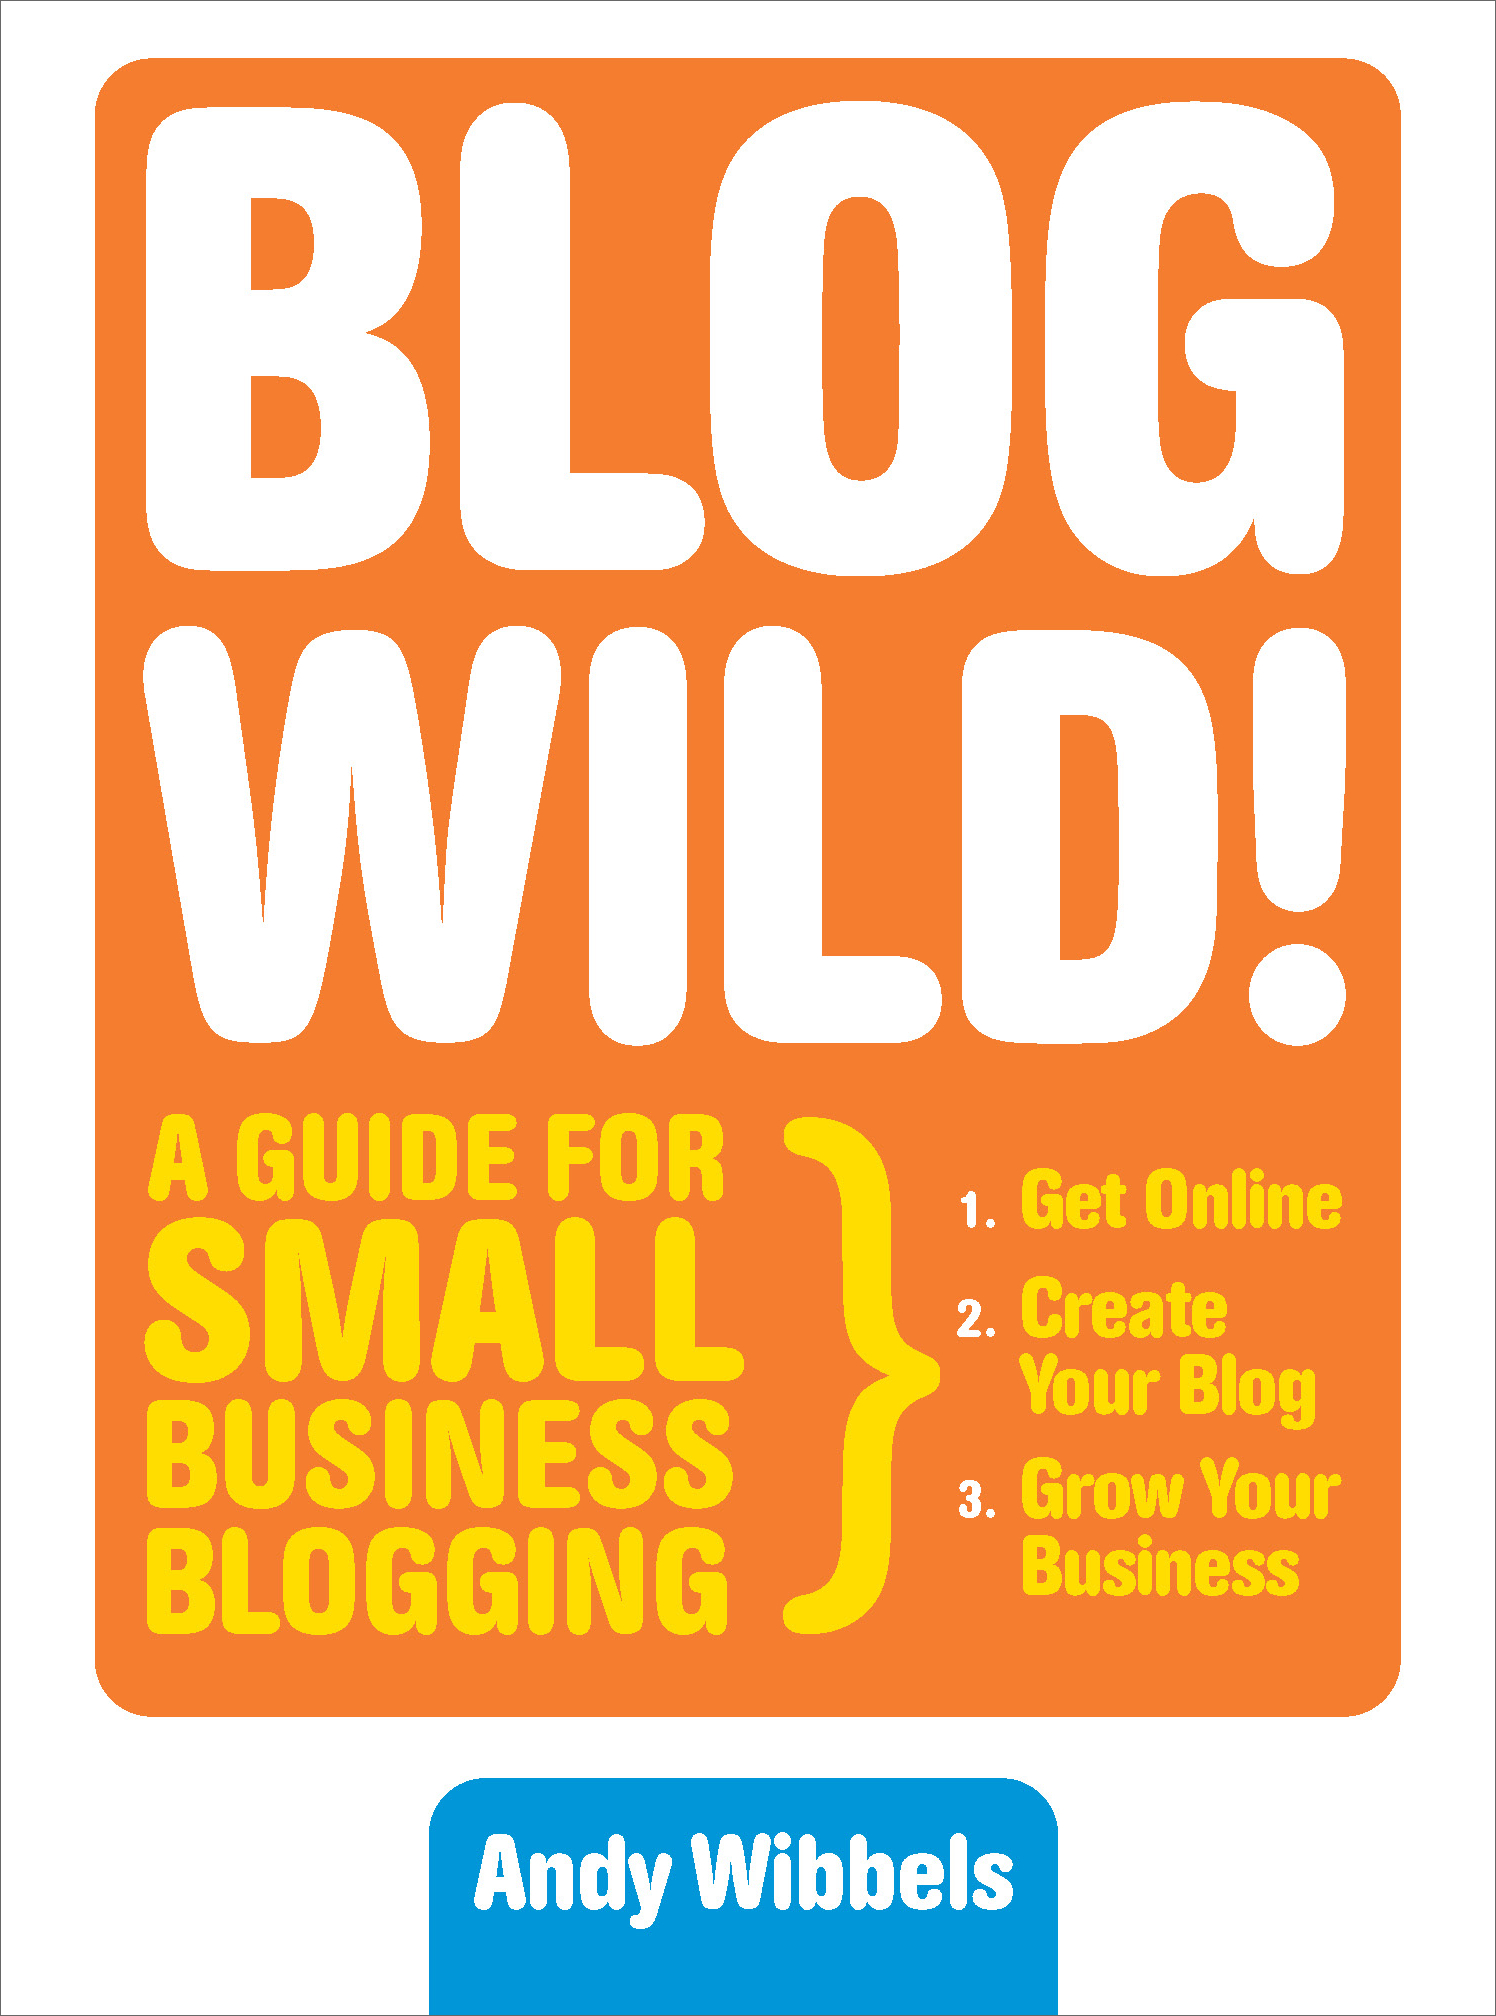 Blogwild!: A Guide for Small Business Blogging